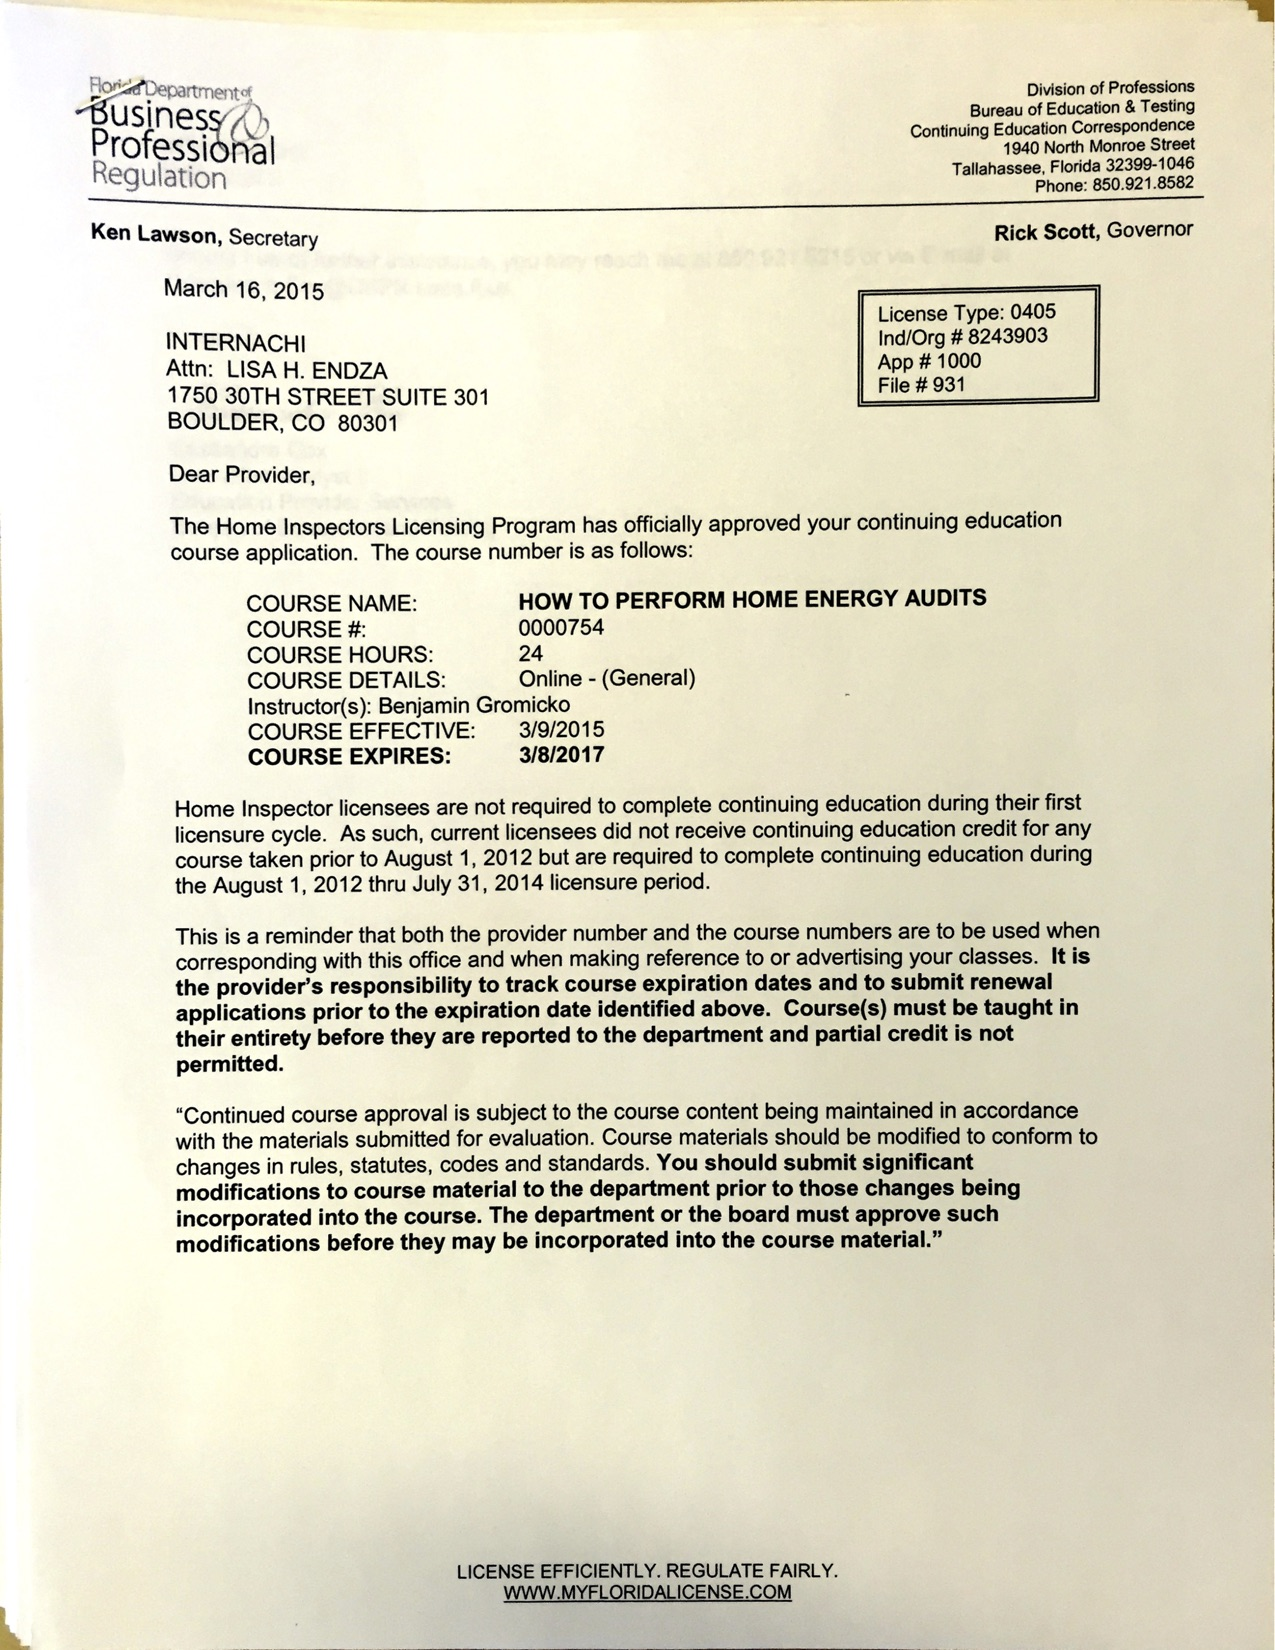 view approval letter for how to perform home energy audits course